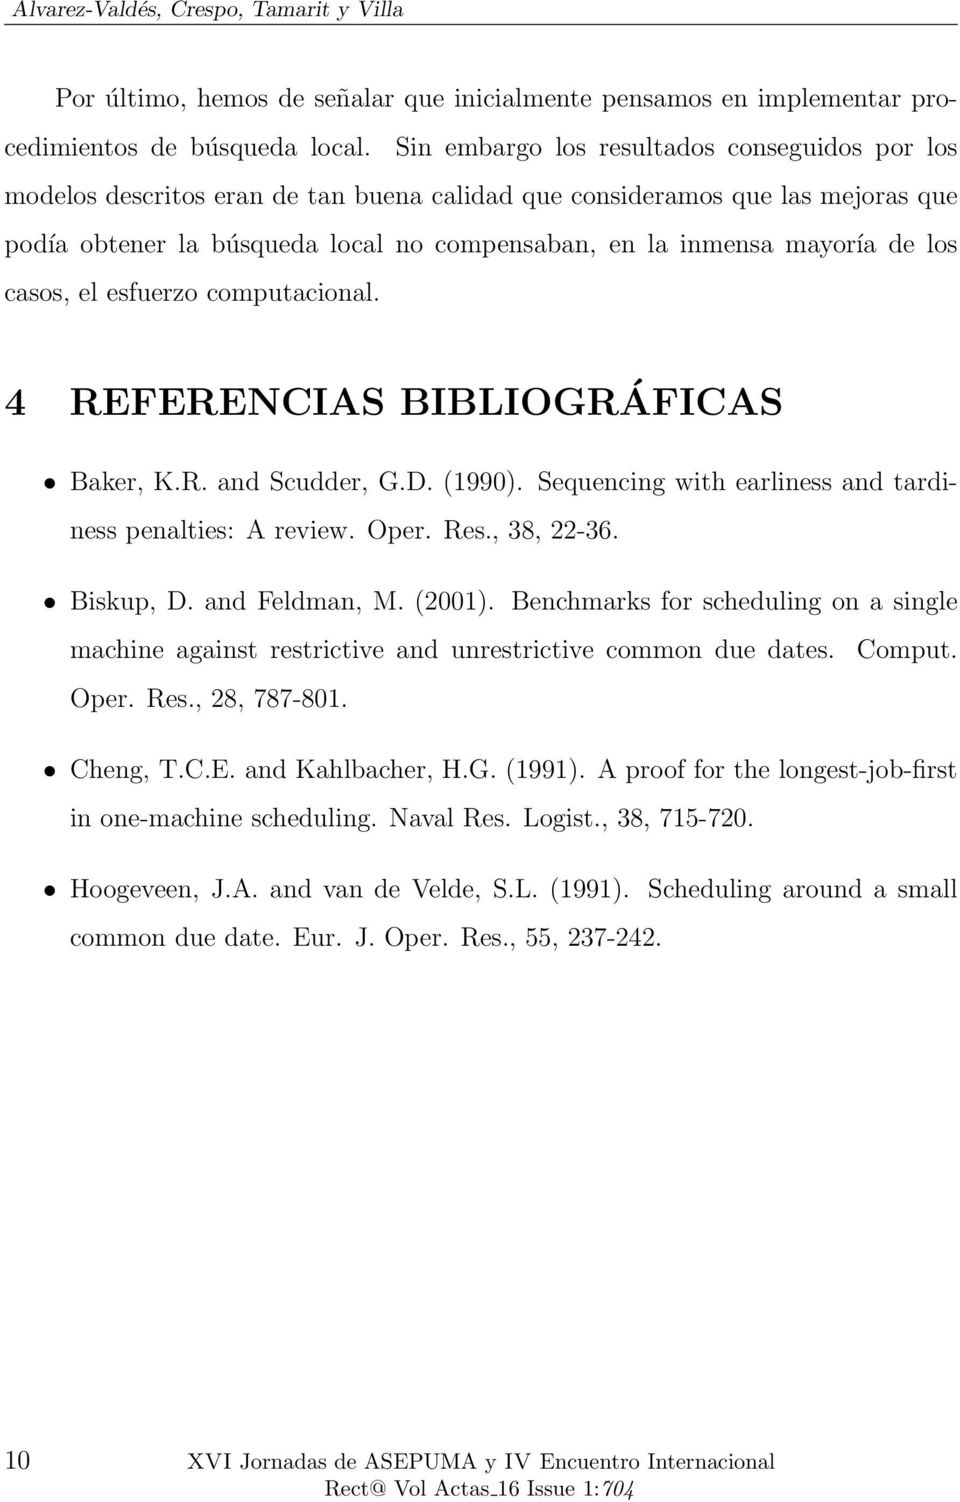 de los casos, el esfuerzo computacional. 4 REFERENCIAS BIBLIOGRÁFICAS Baker, K.R. and Scudder, G.D. (1990). Sequencing with earliness and tardiness penalties: A review. Oper. Res., 38, 22-36.